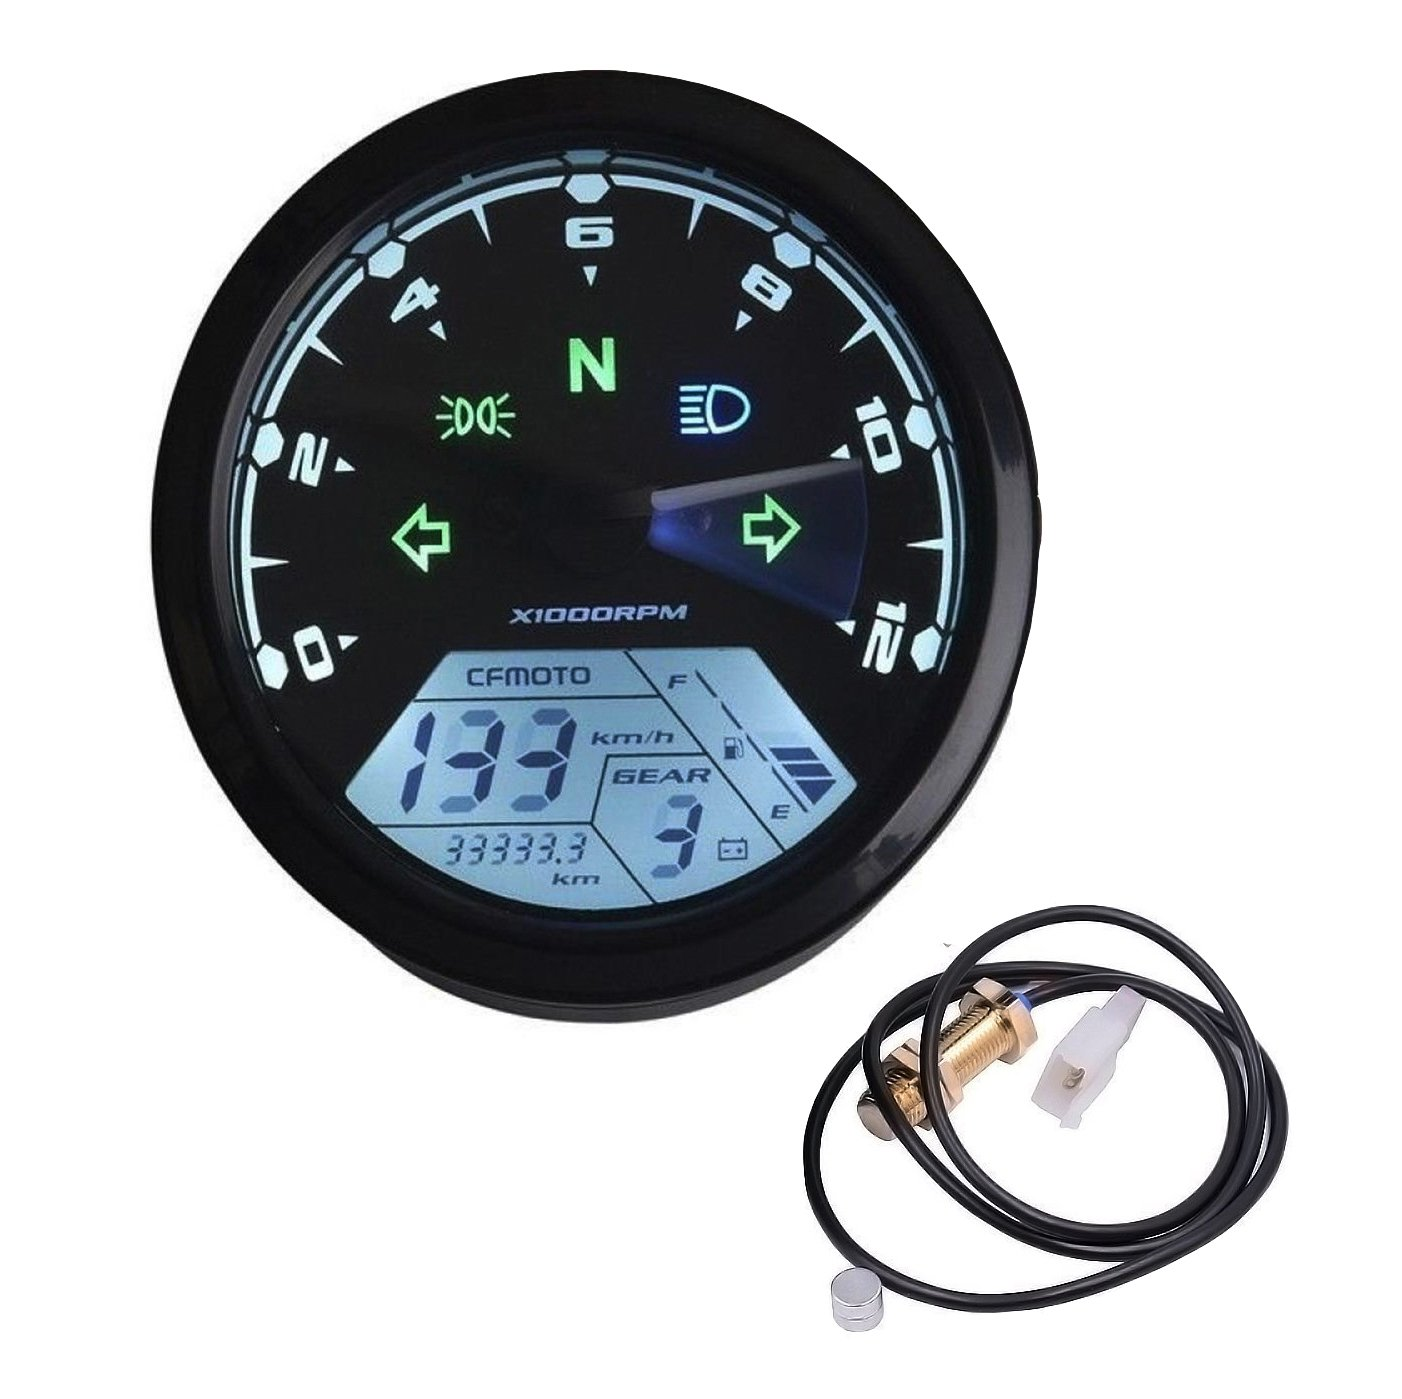 Ambuker 199 Kmh Mph 12000 Rpm Lcd Digital Speedometer Auto Gauge Wiring Diagram Tachometer Odometer For Honda Motorcycle Sctoor Golf Carts Atv Automotive